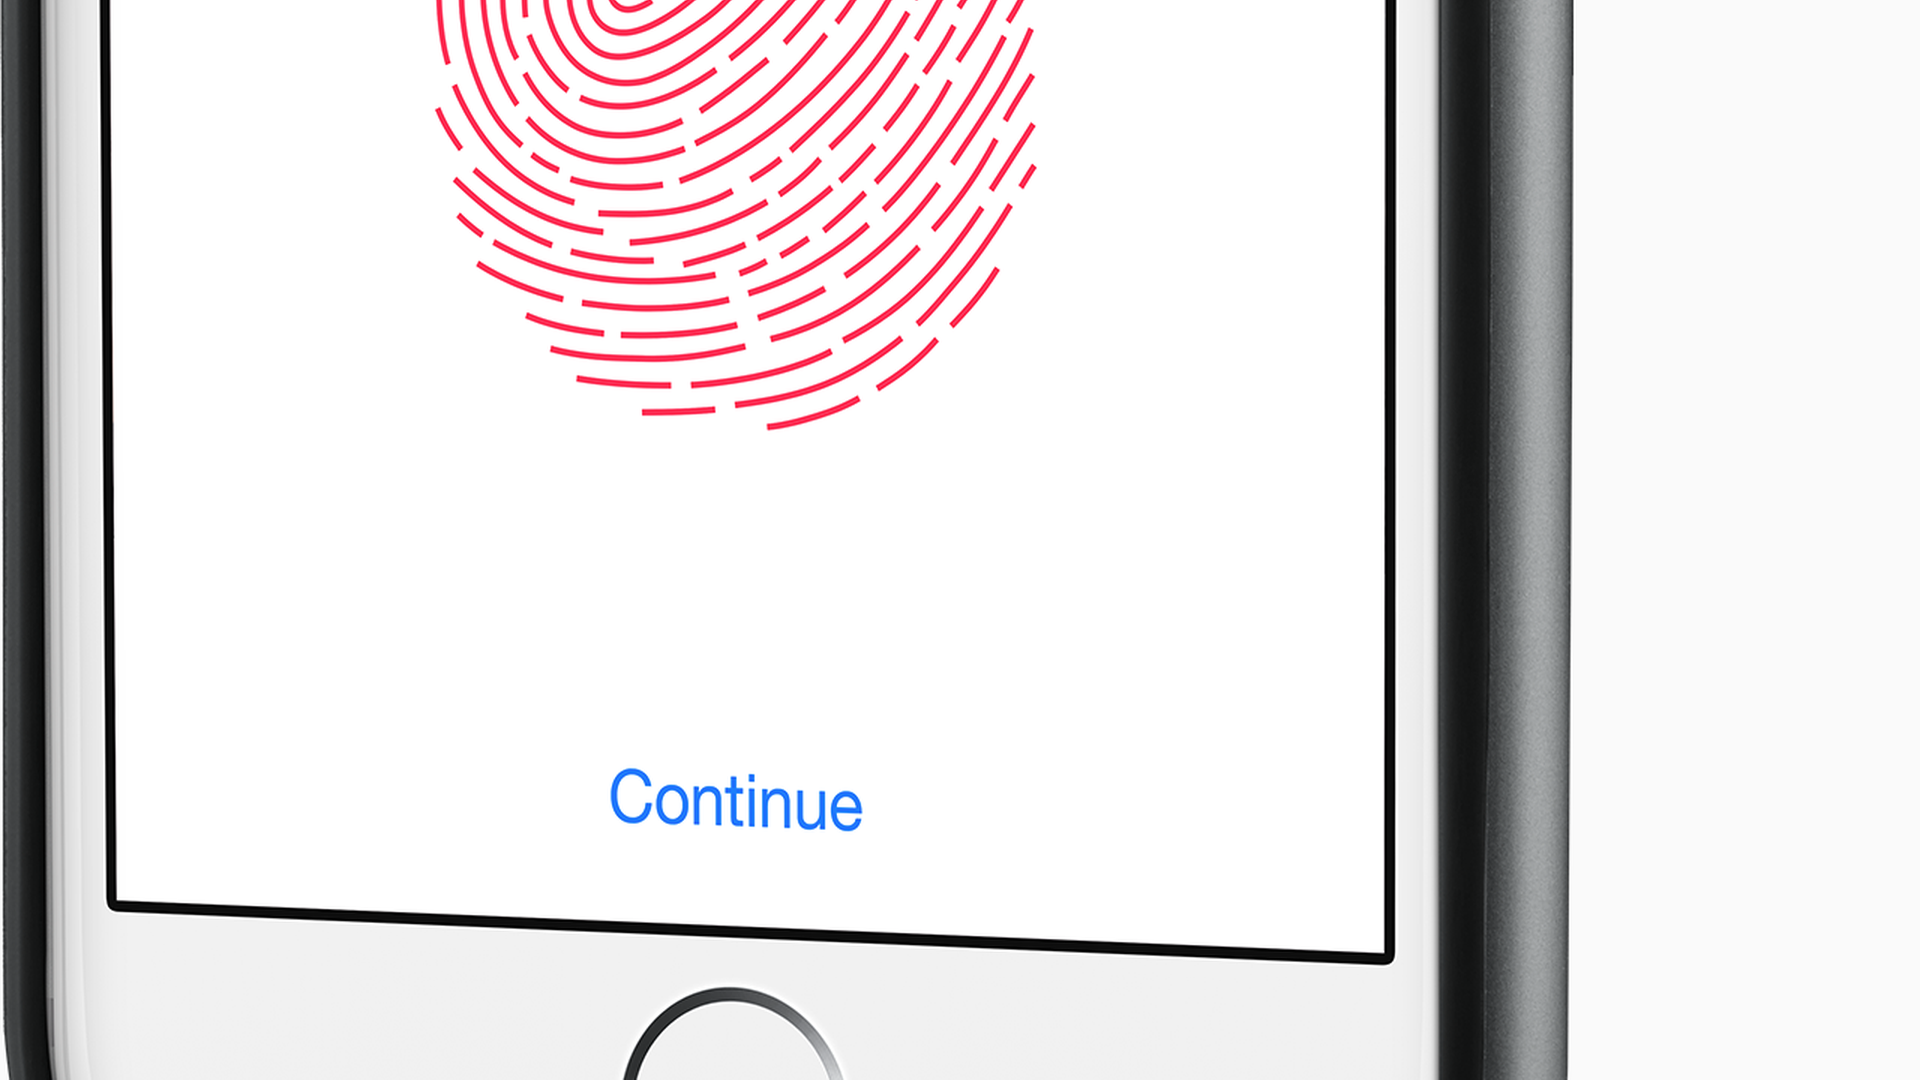 iPhone with fingerprint ID on screen